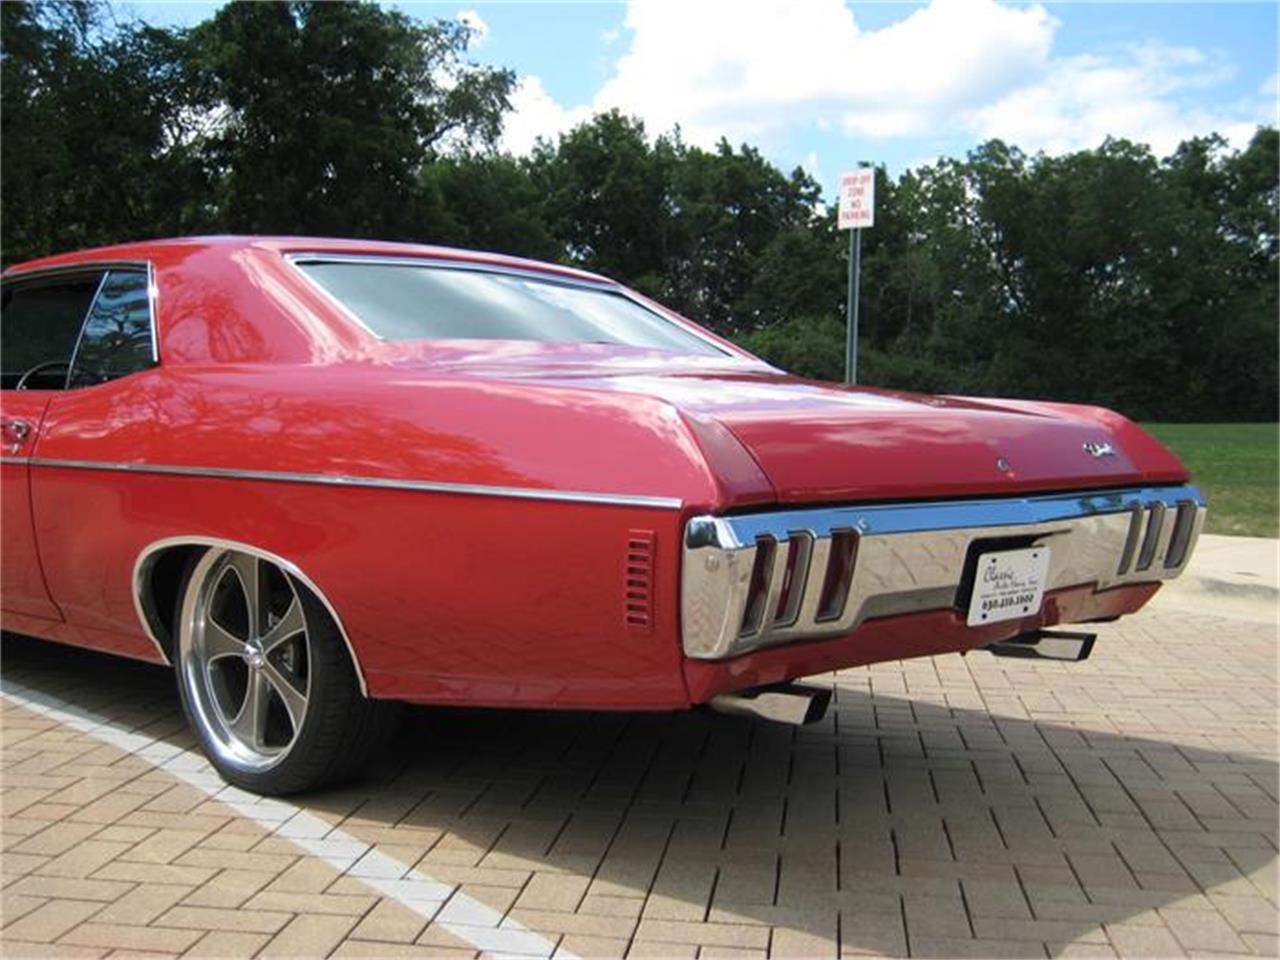 Large Picture of 1970 Chevrolet Impala located in Geneva Illinois - $22,995.00 Offered by Classic Auto Haus - F45R